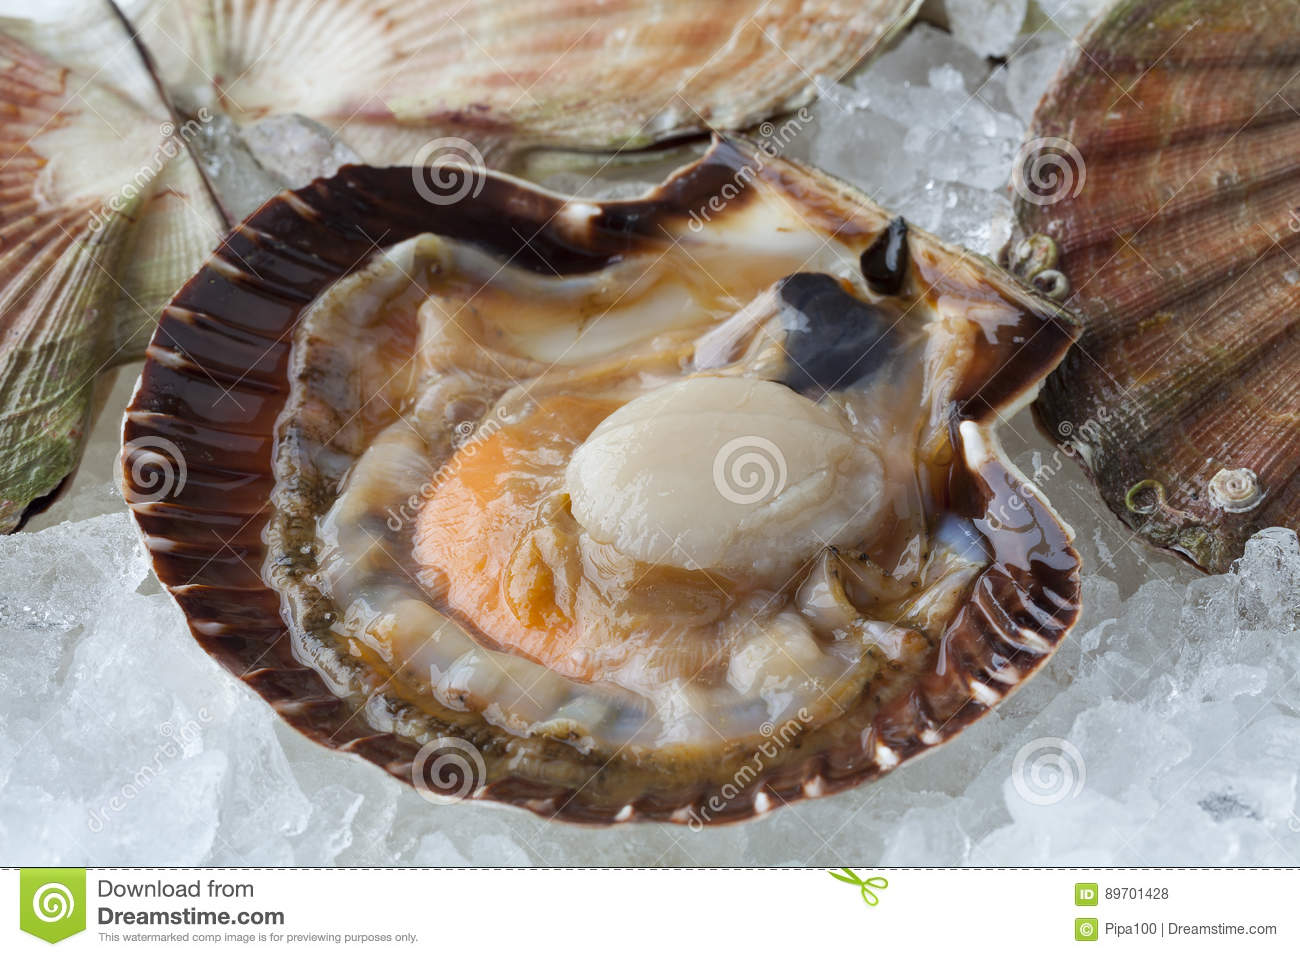 Fresh raw open scallop on ice